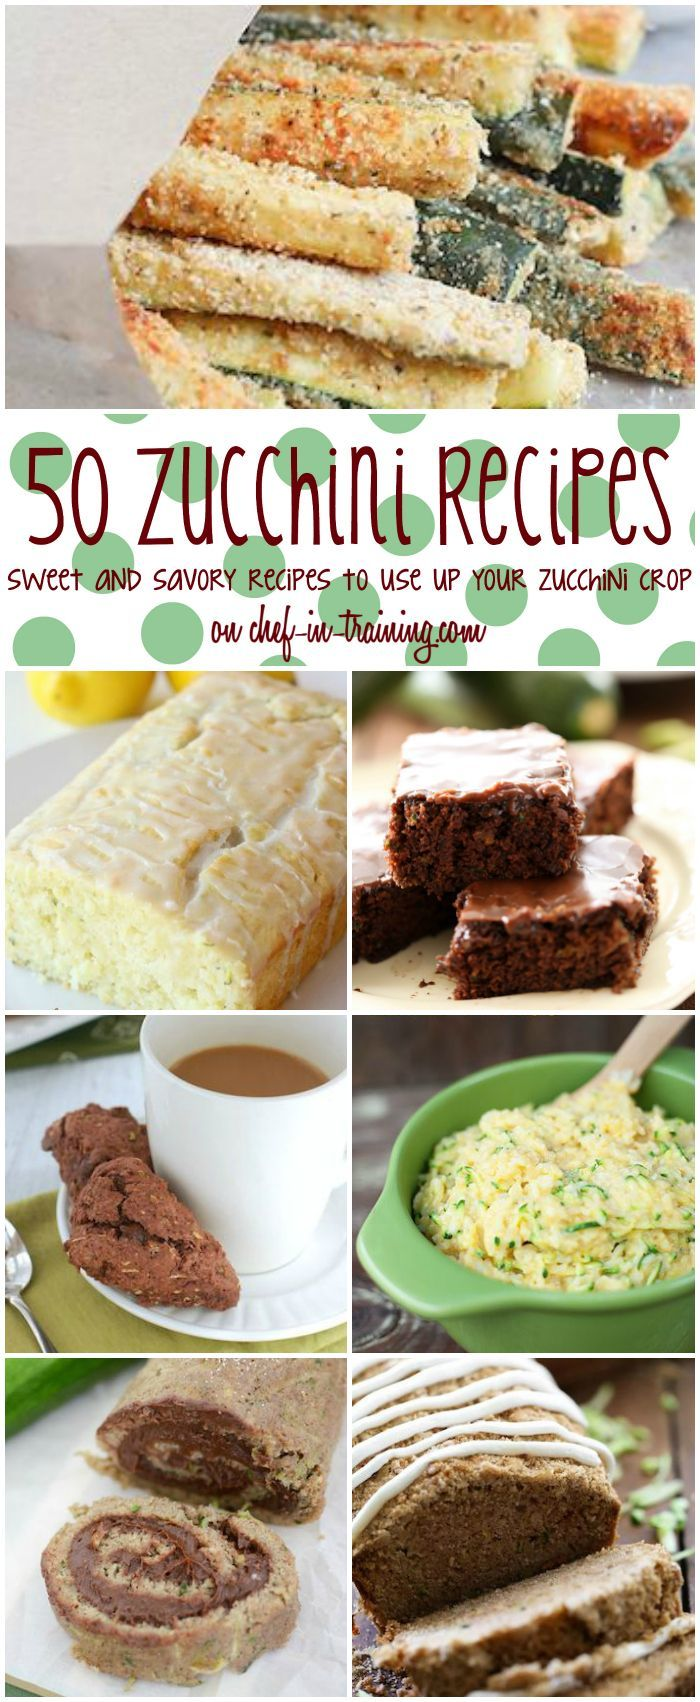 Zucchini Recipes 50+ Zucchini Recipes on chef-in- …If you have zucchini that you are looking to use up, then this is the list for you!50+ Zucchini Recipes on chef-in- …If you have zucchini that you are looking to use up, then this is the list for you!